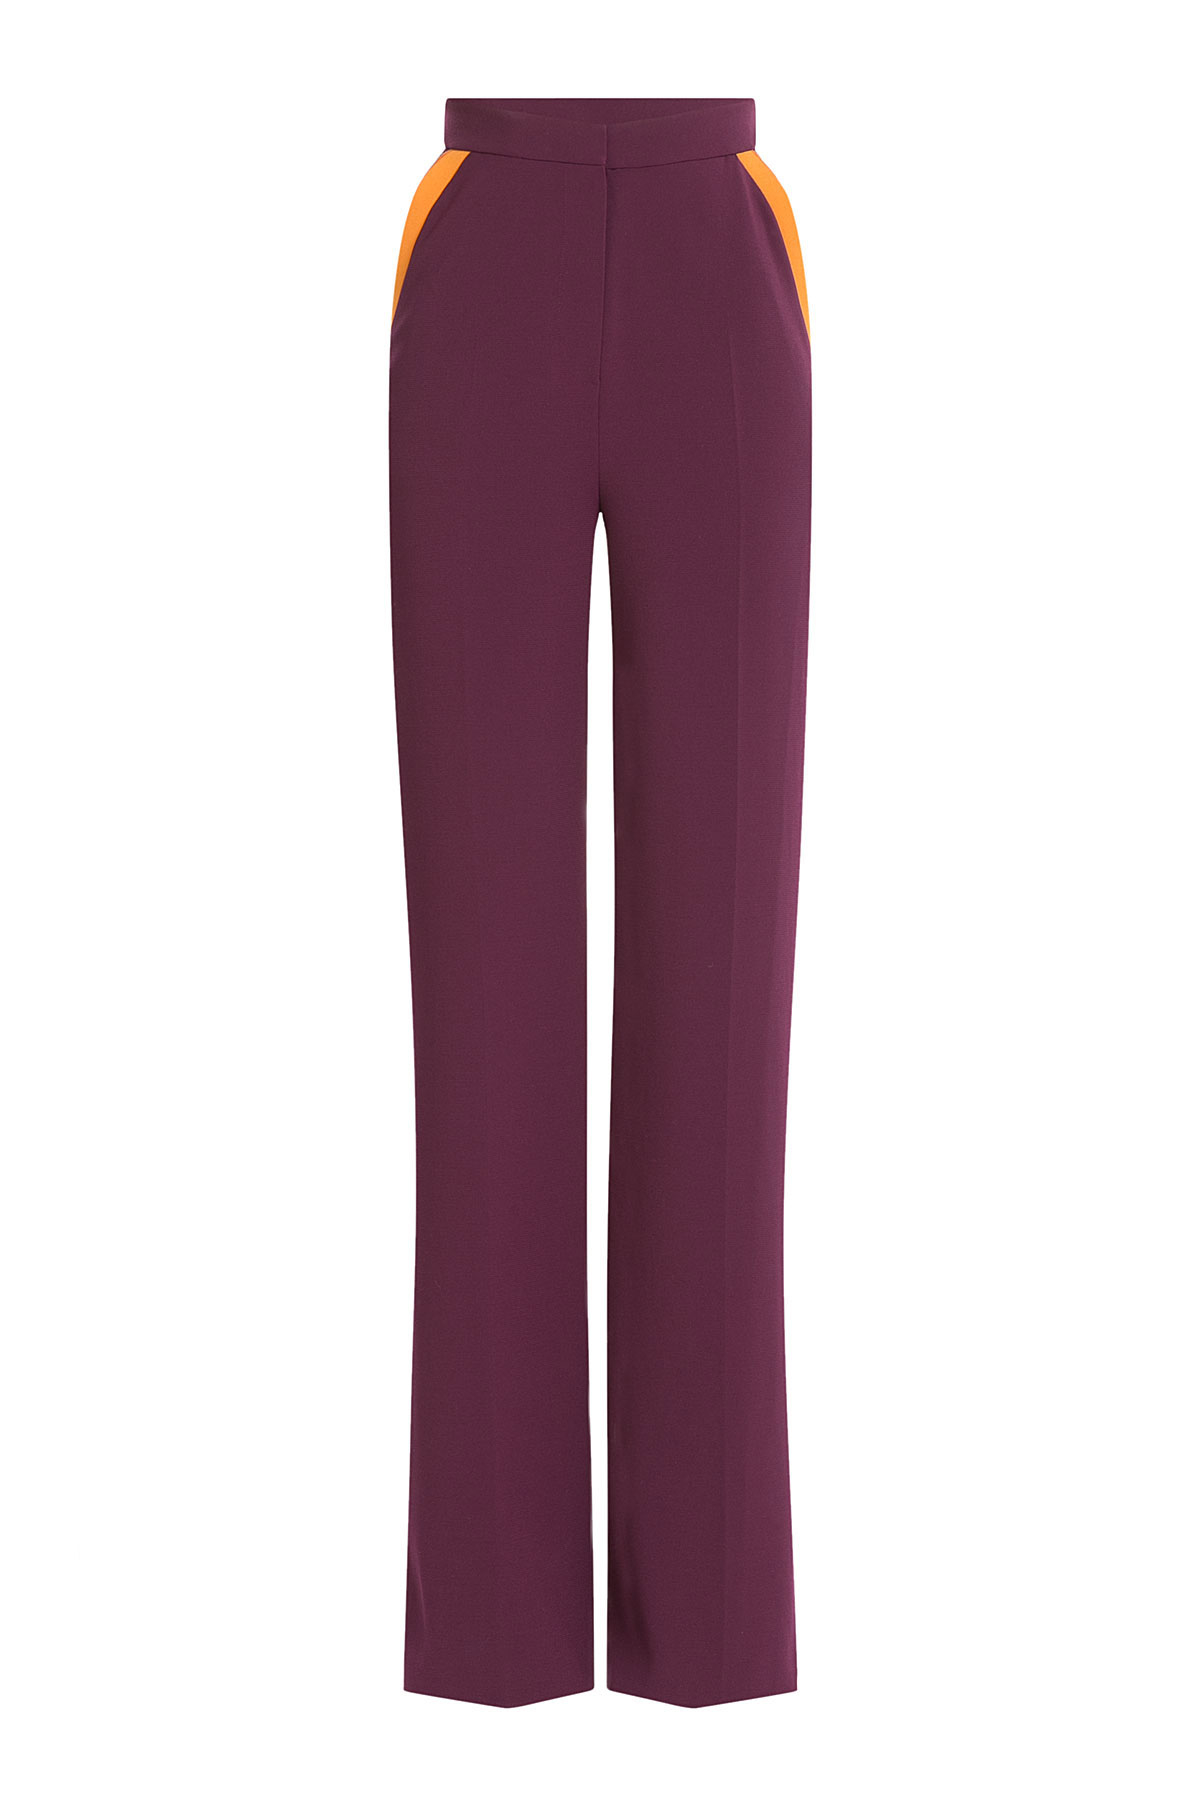 Shop for PURPLE 2XL Elastic Waist Smocked Wide Leg Pants online at $ and discover fashion at theotherqi.cf Cheapest and Latest women & men fashion site including categories such as dresses, shoes, bags and jewelry with free shipping all over the theotherqi.cf: Rosegal.